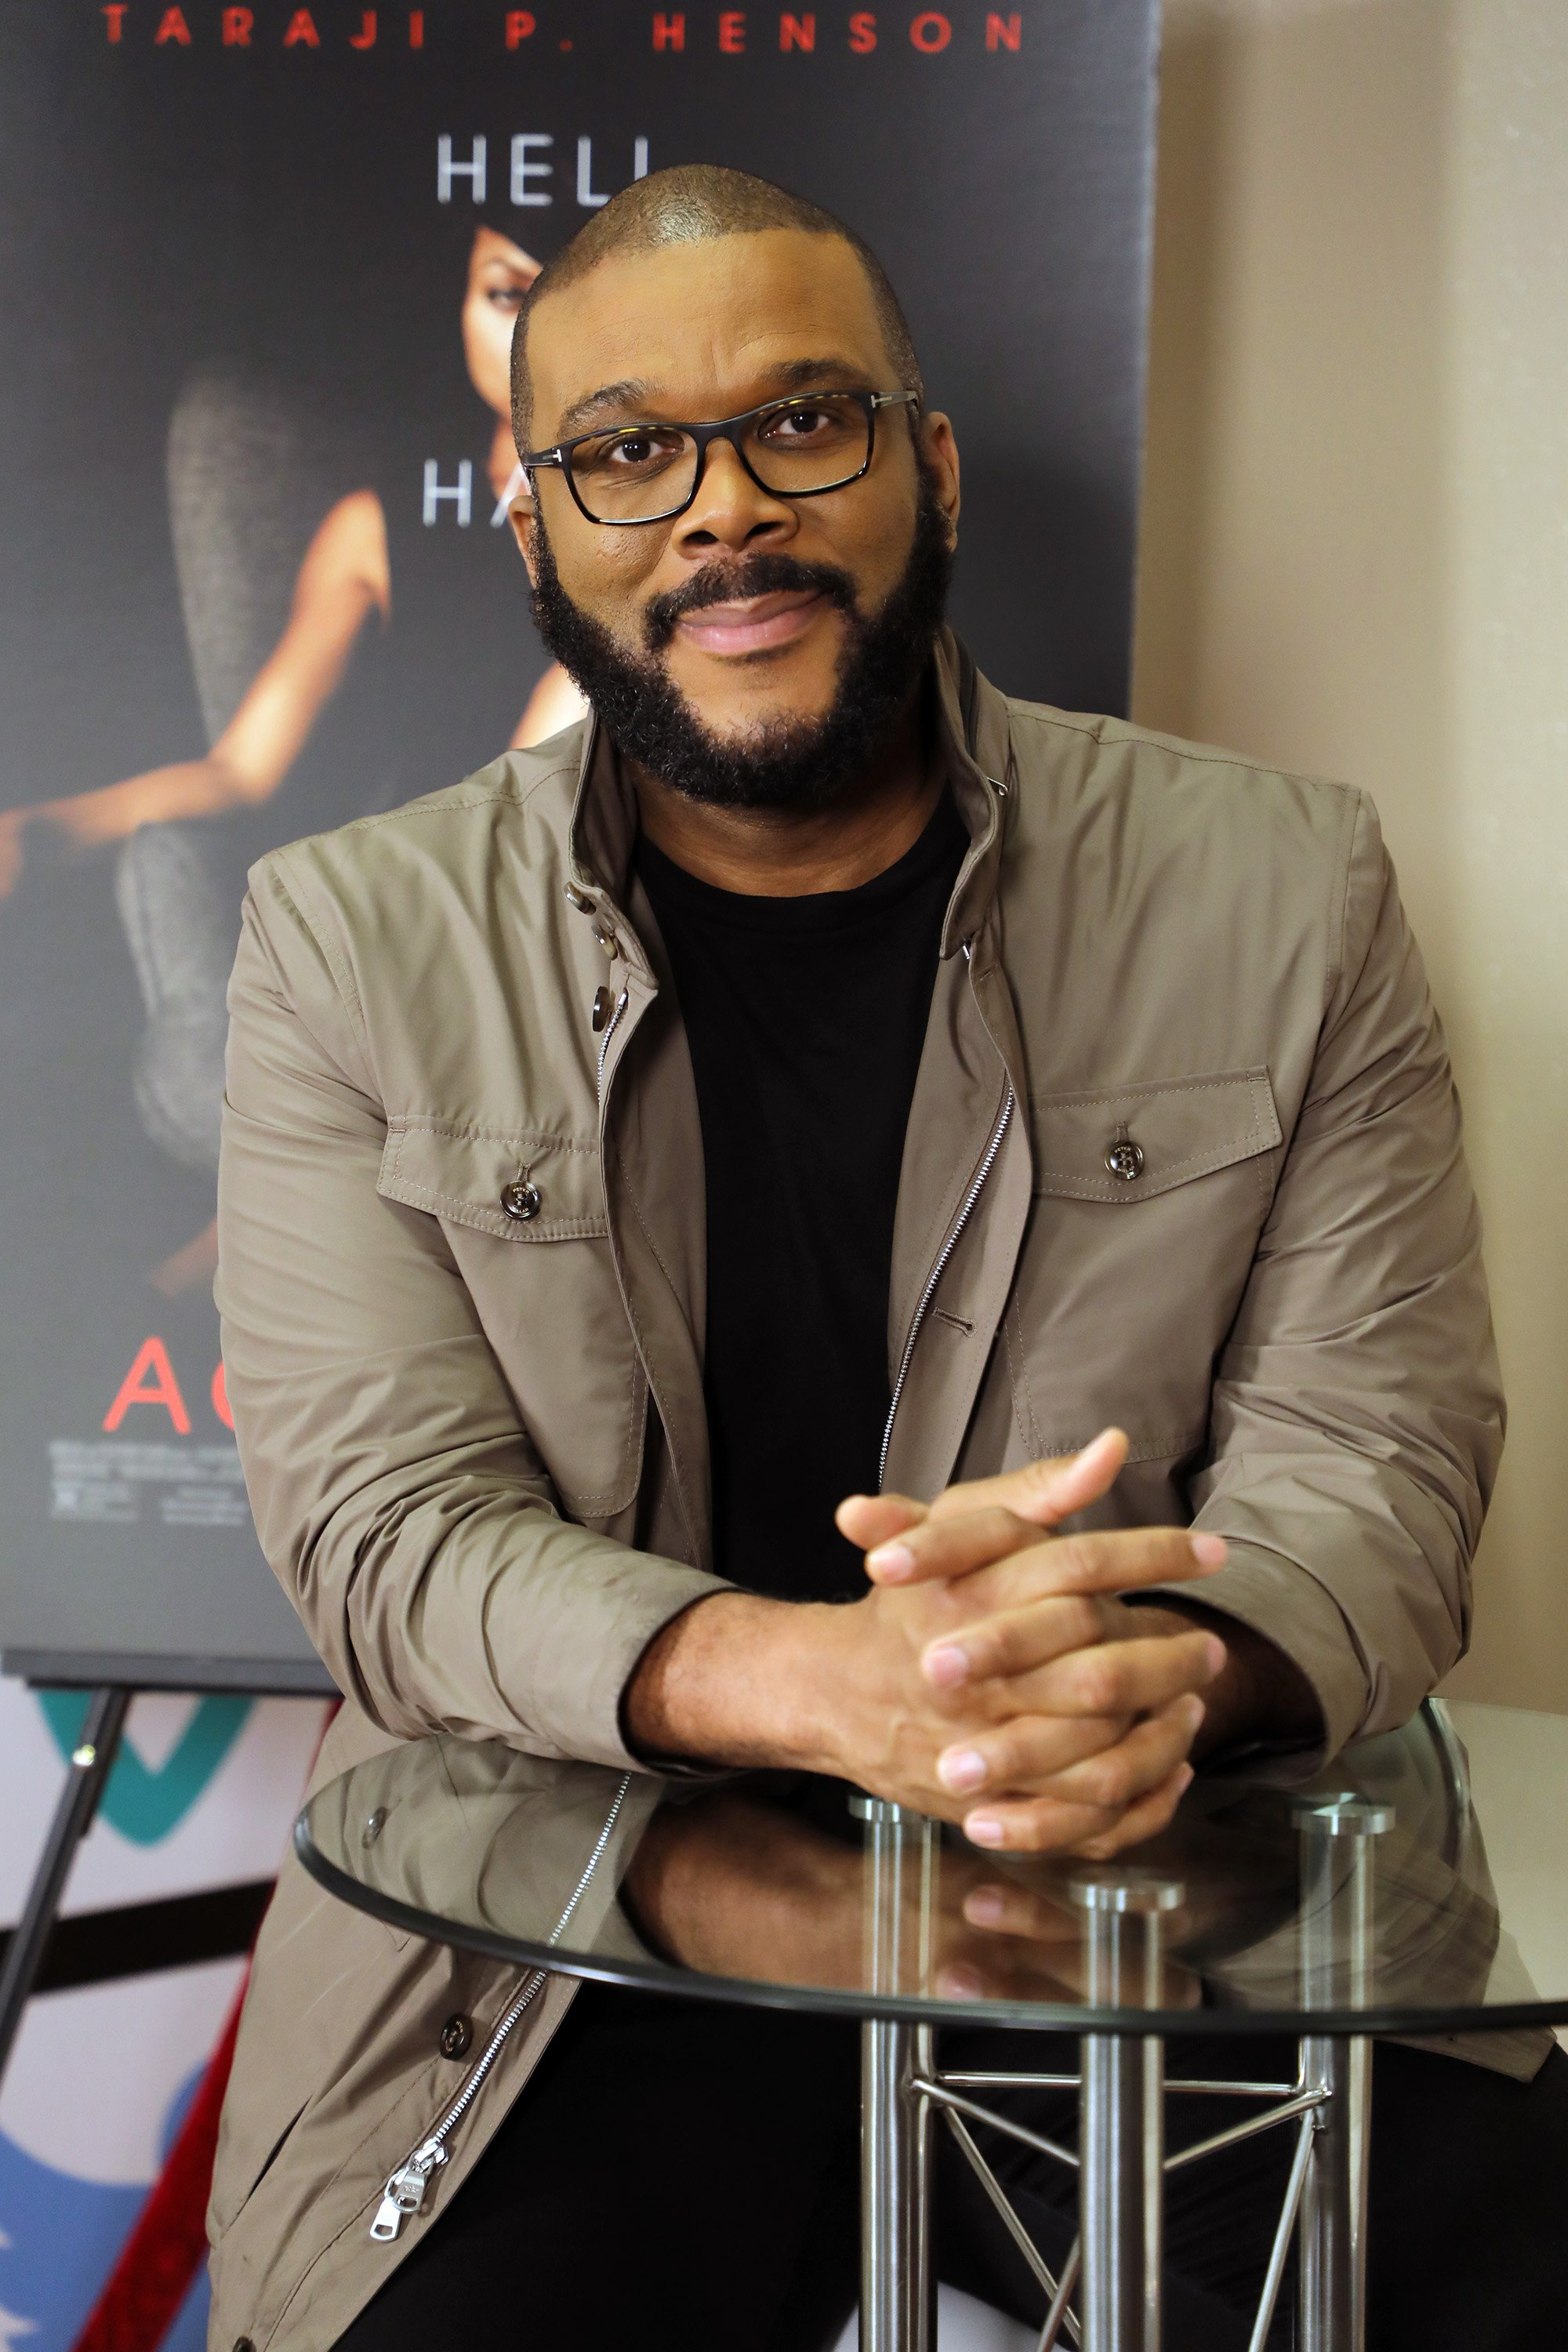 Mega producer Tyler Perry promoting a film in Florida in March 2019. | Photo: Getty Images